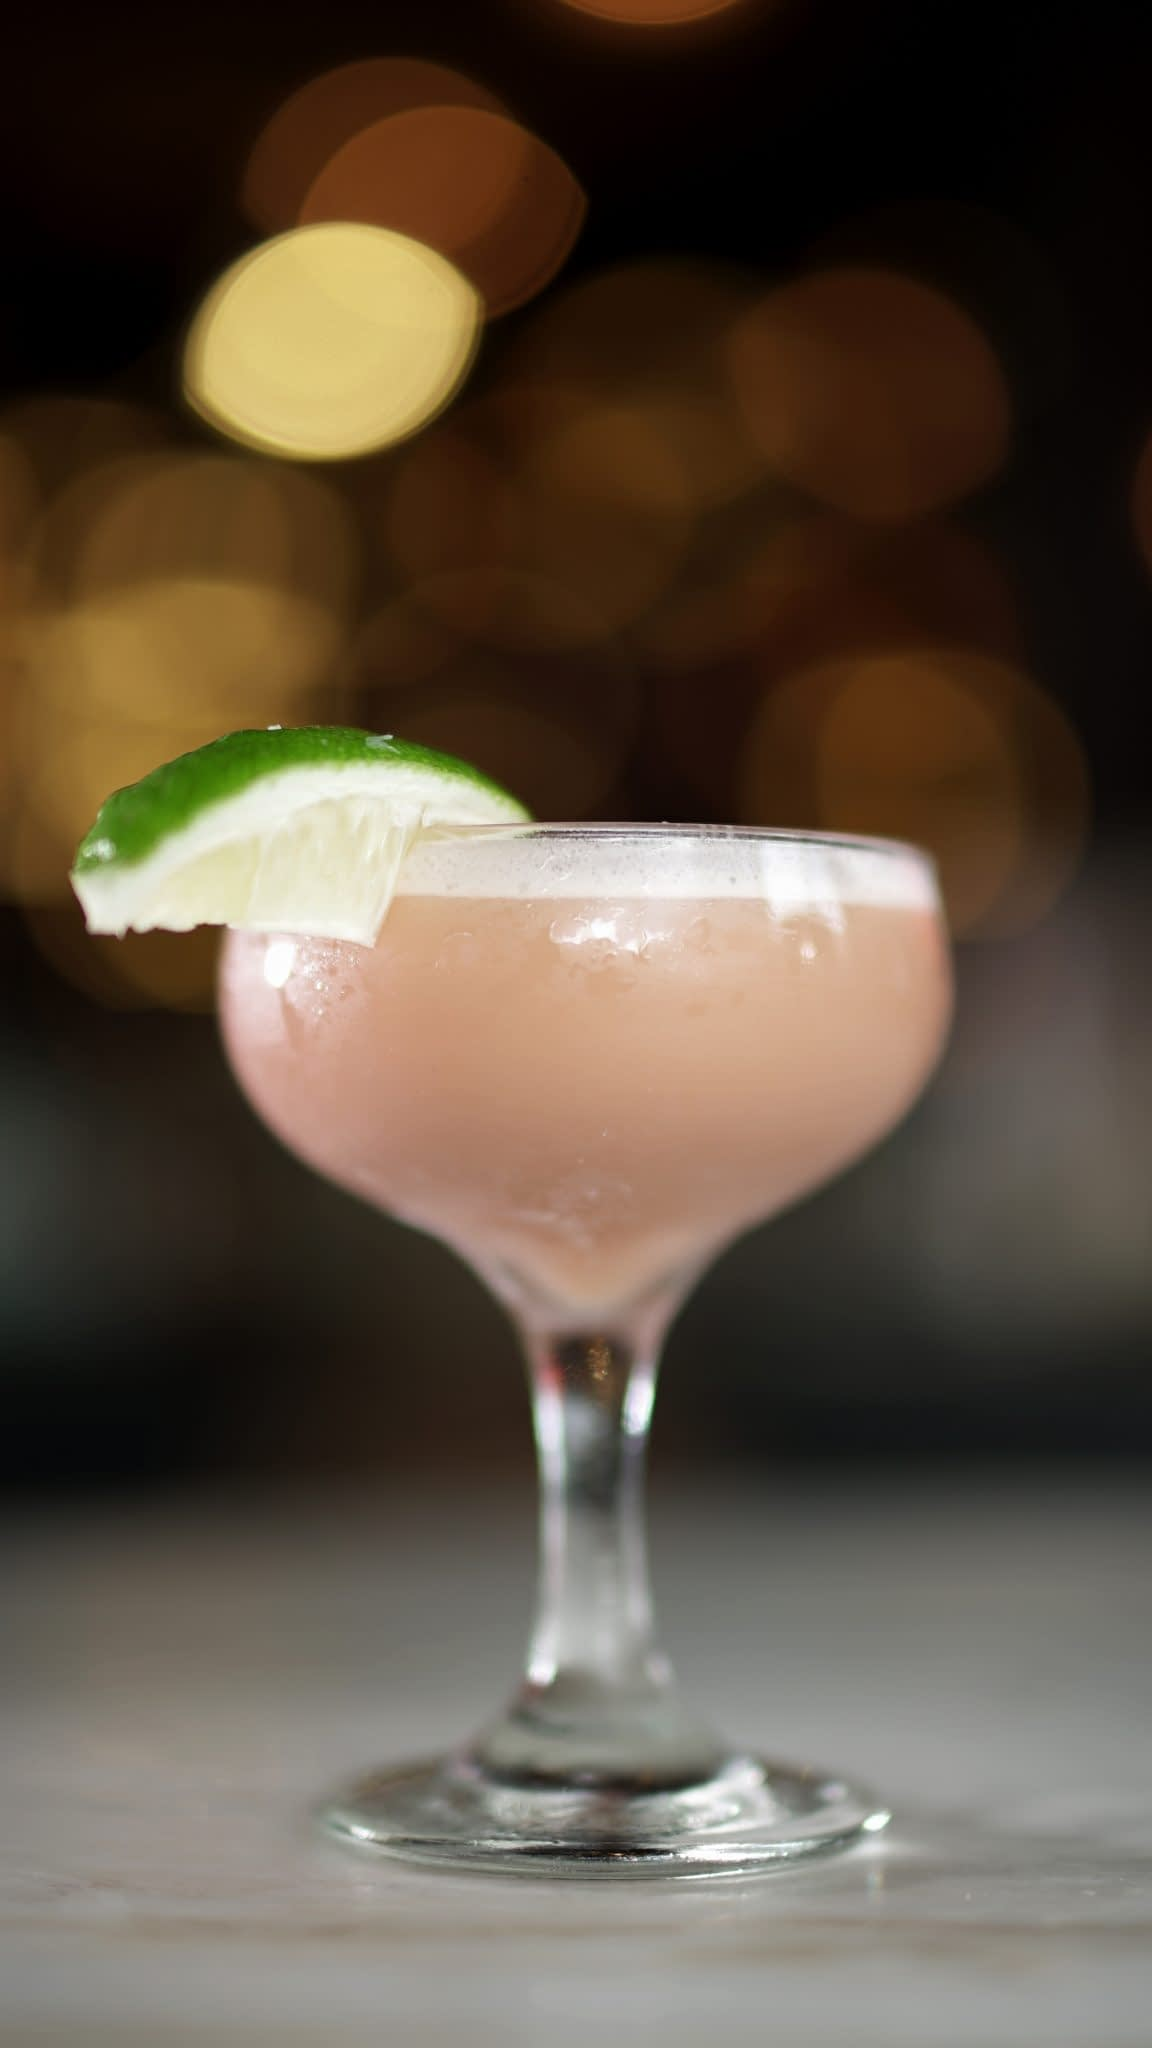 A creamy pink cocktail with bright white foam is served in a coupe glass with a lime wedge garnish. The cocktail sits on a marble table with a dark background.